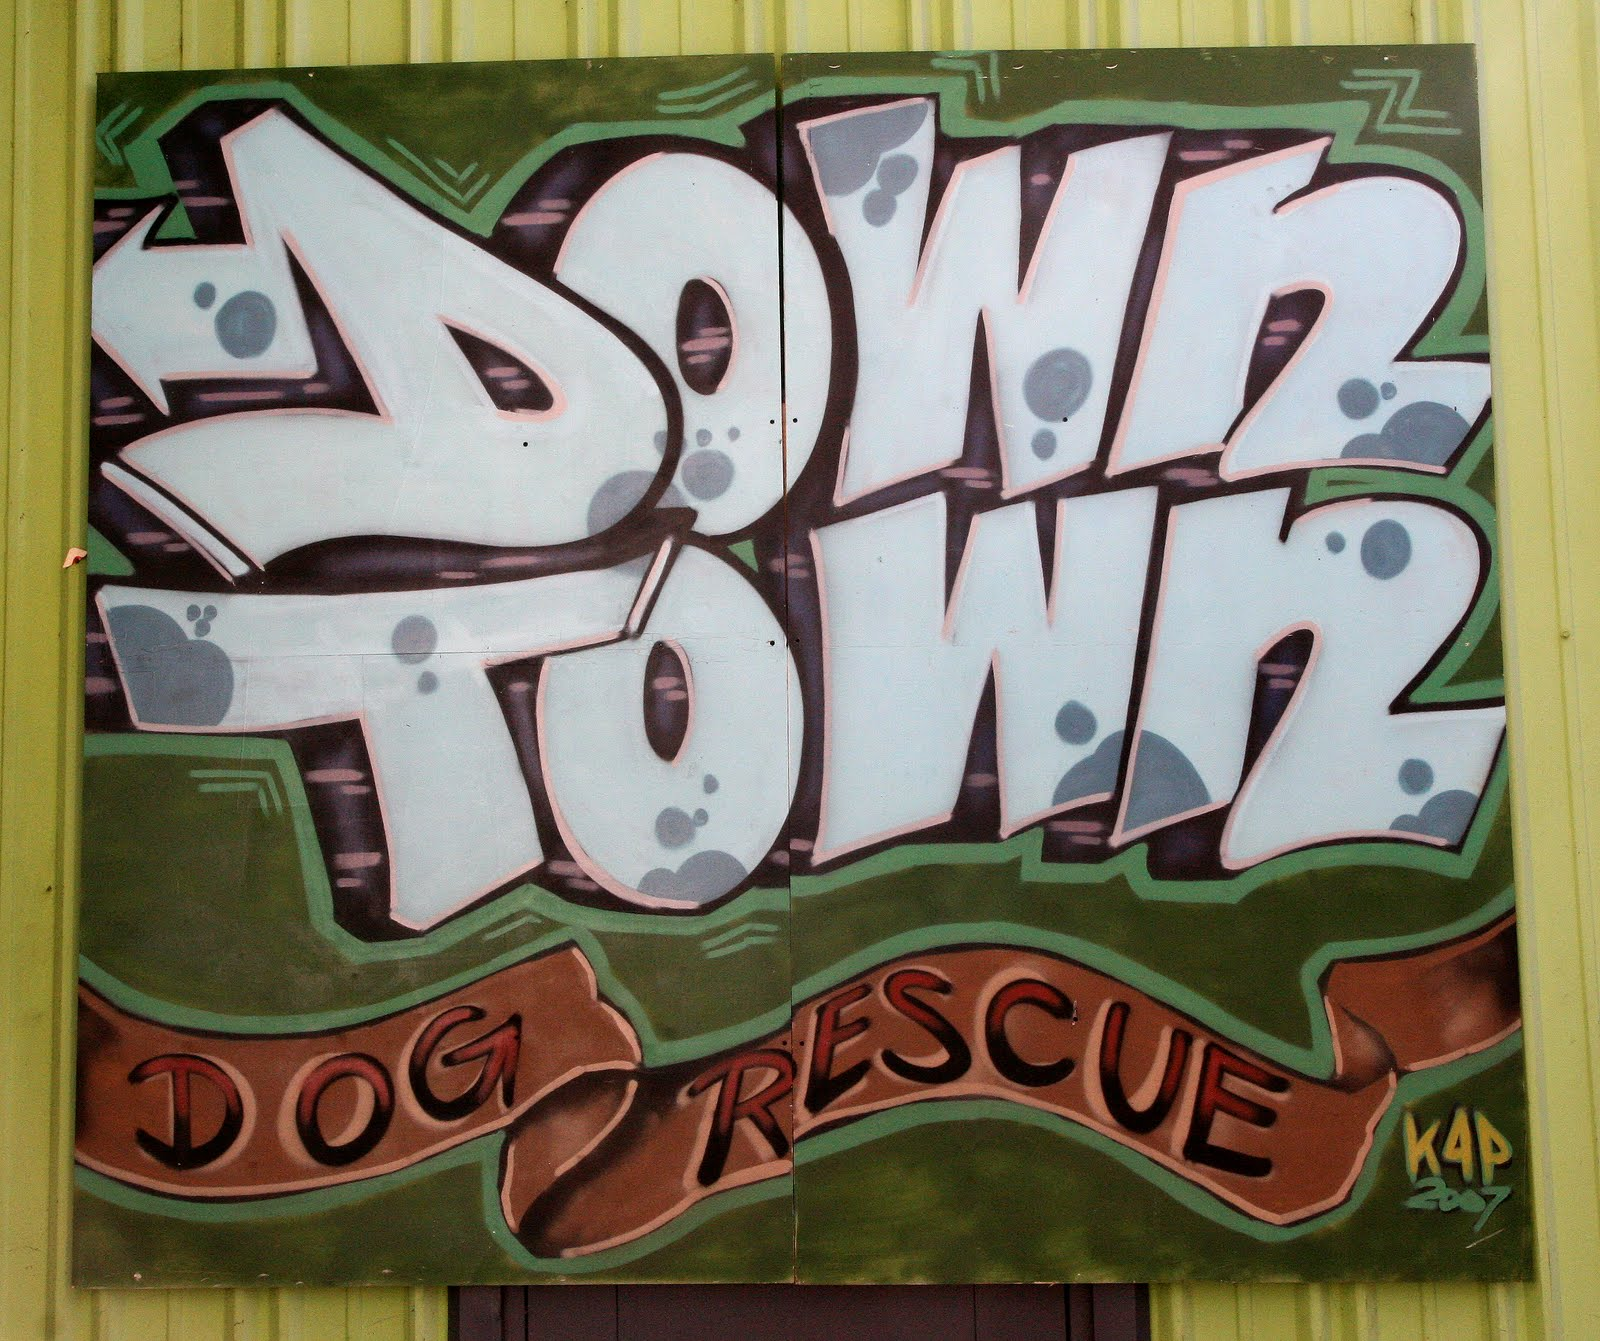 LORI'S CORNER: DOWNTOWN DOG RESCUE S O S  TO THE